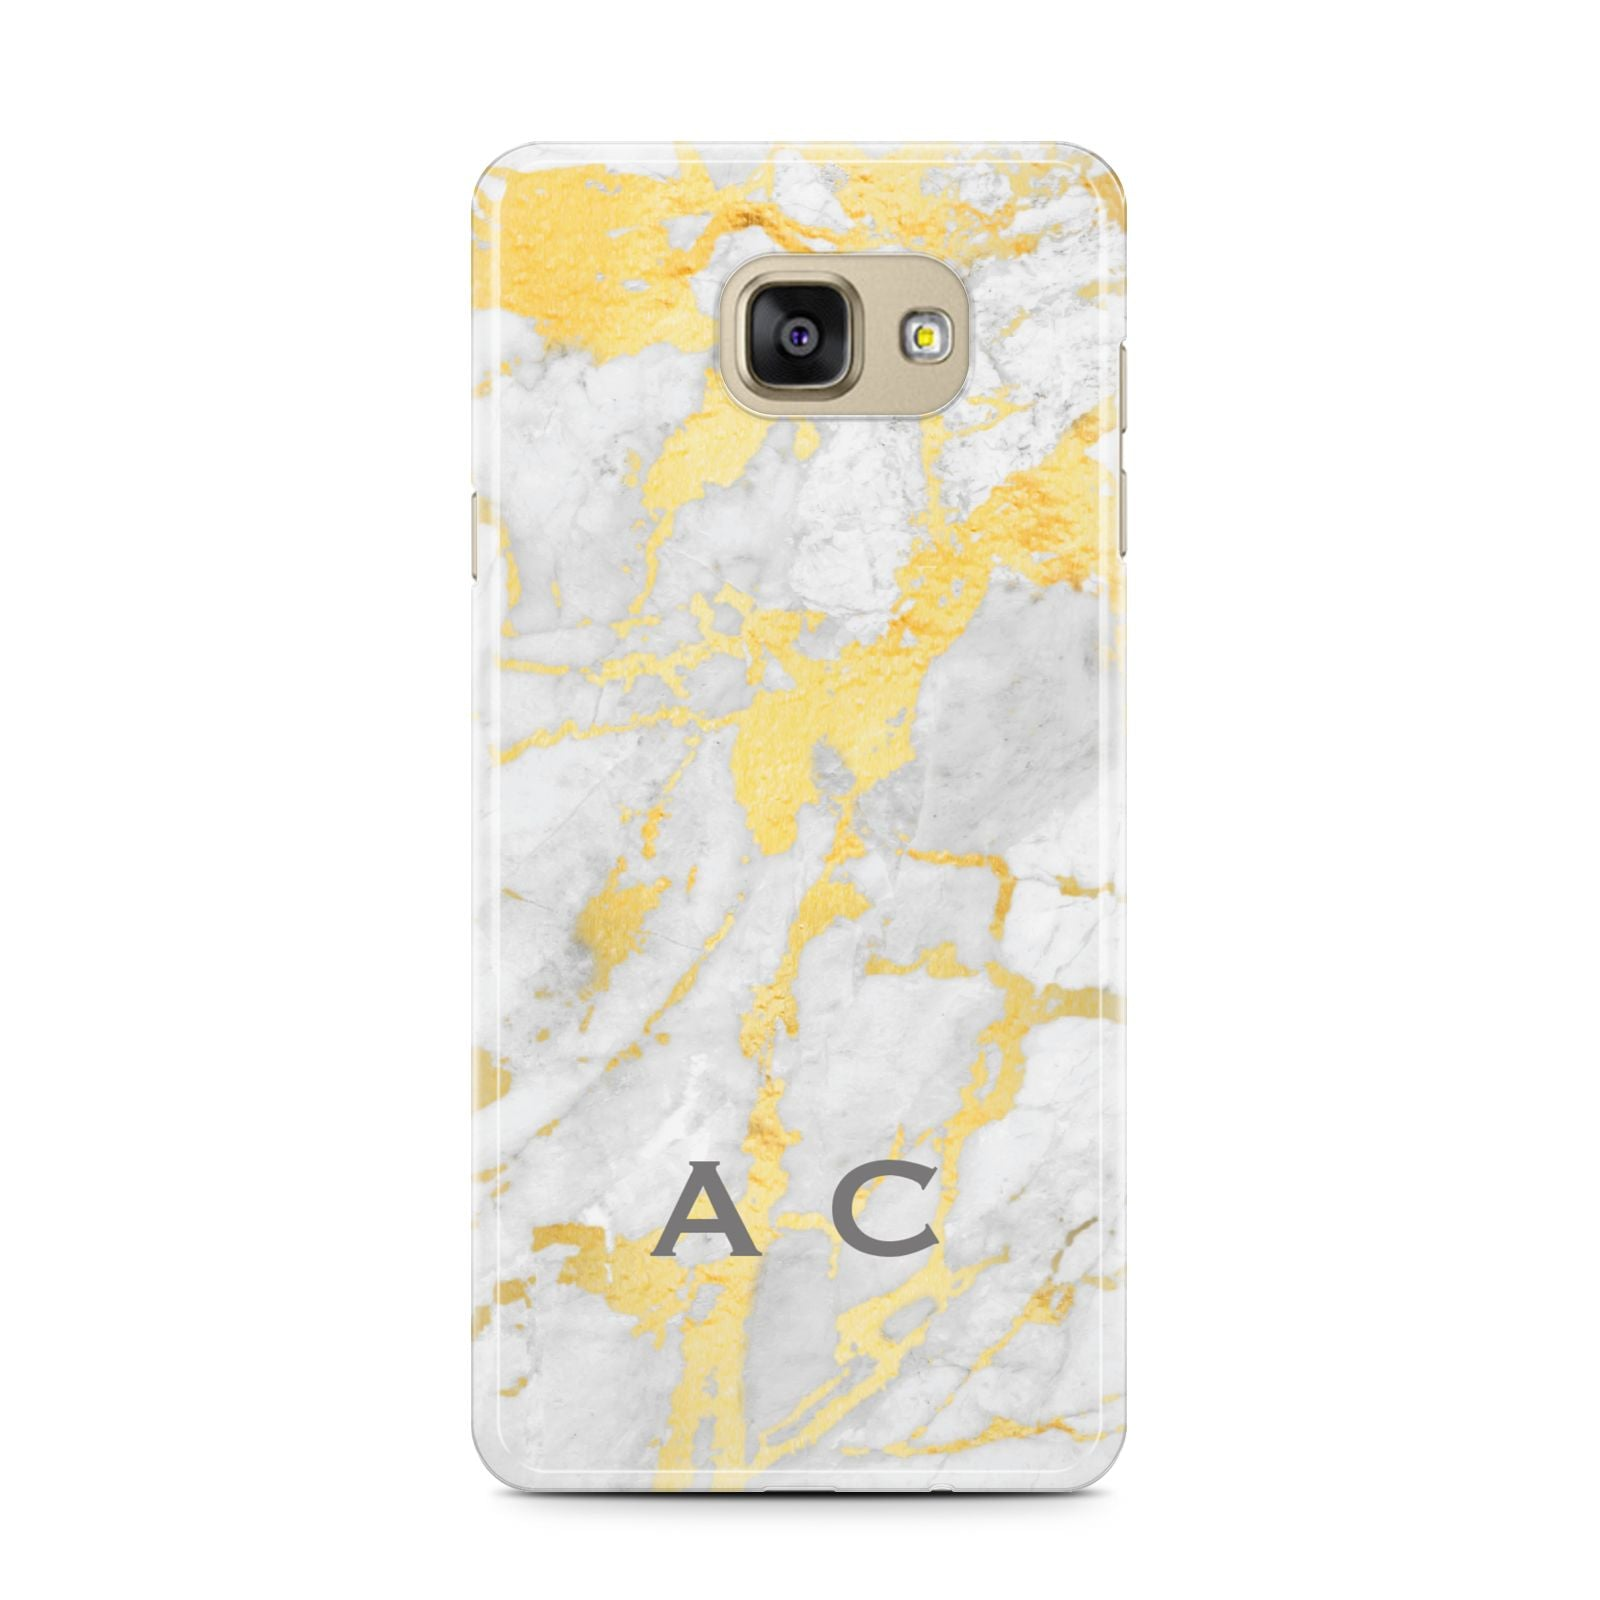 Gold Marble Initials Personalised Samsung Galaxy A7 2016 Case on gold phone